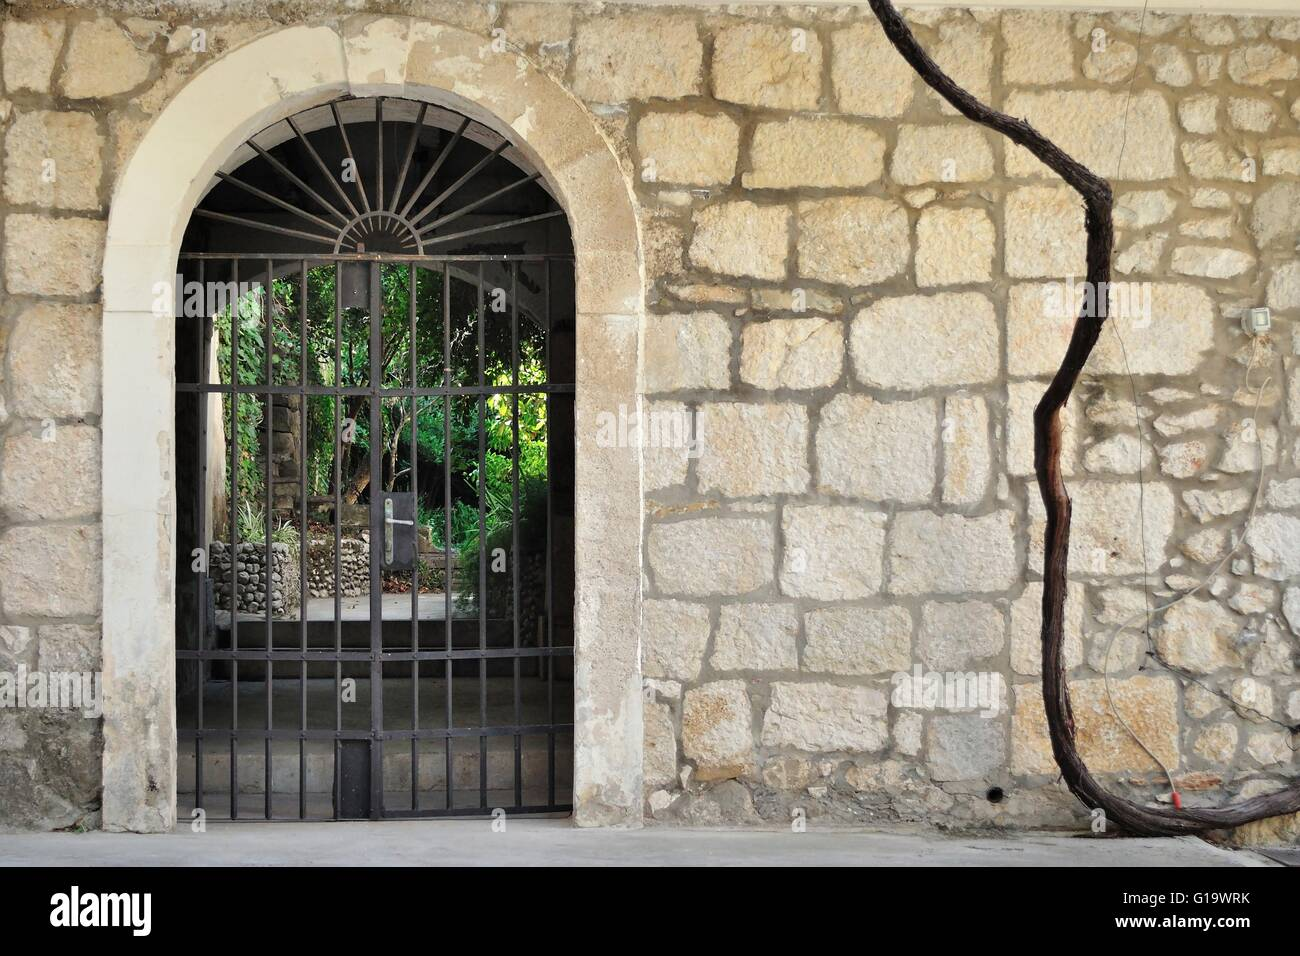 Traditional Arch Gate Stone Wall Stockfotos & Traditional Arch Gate ...